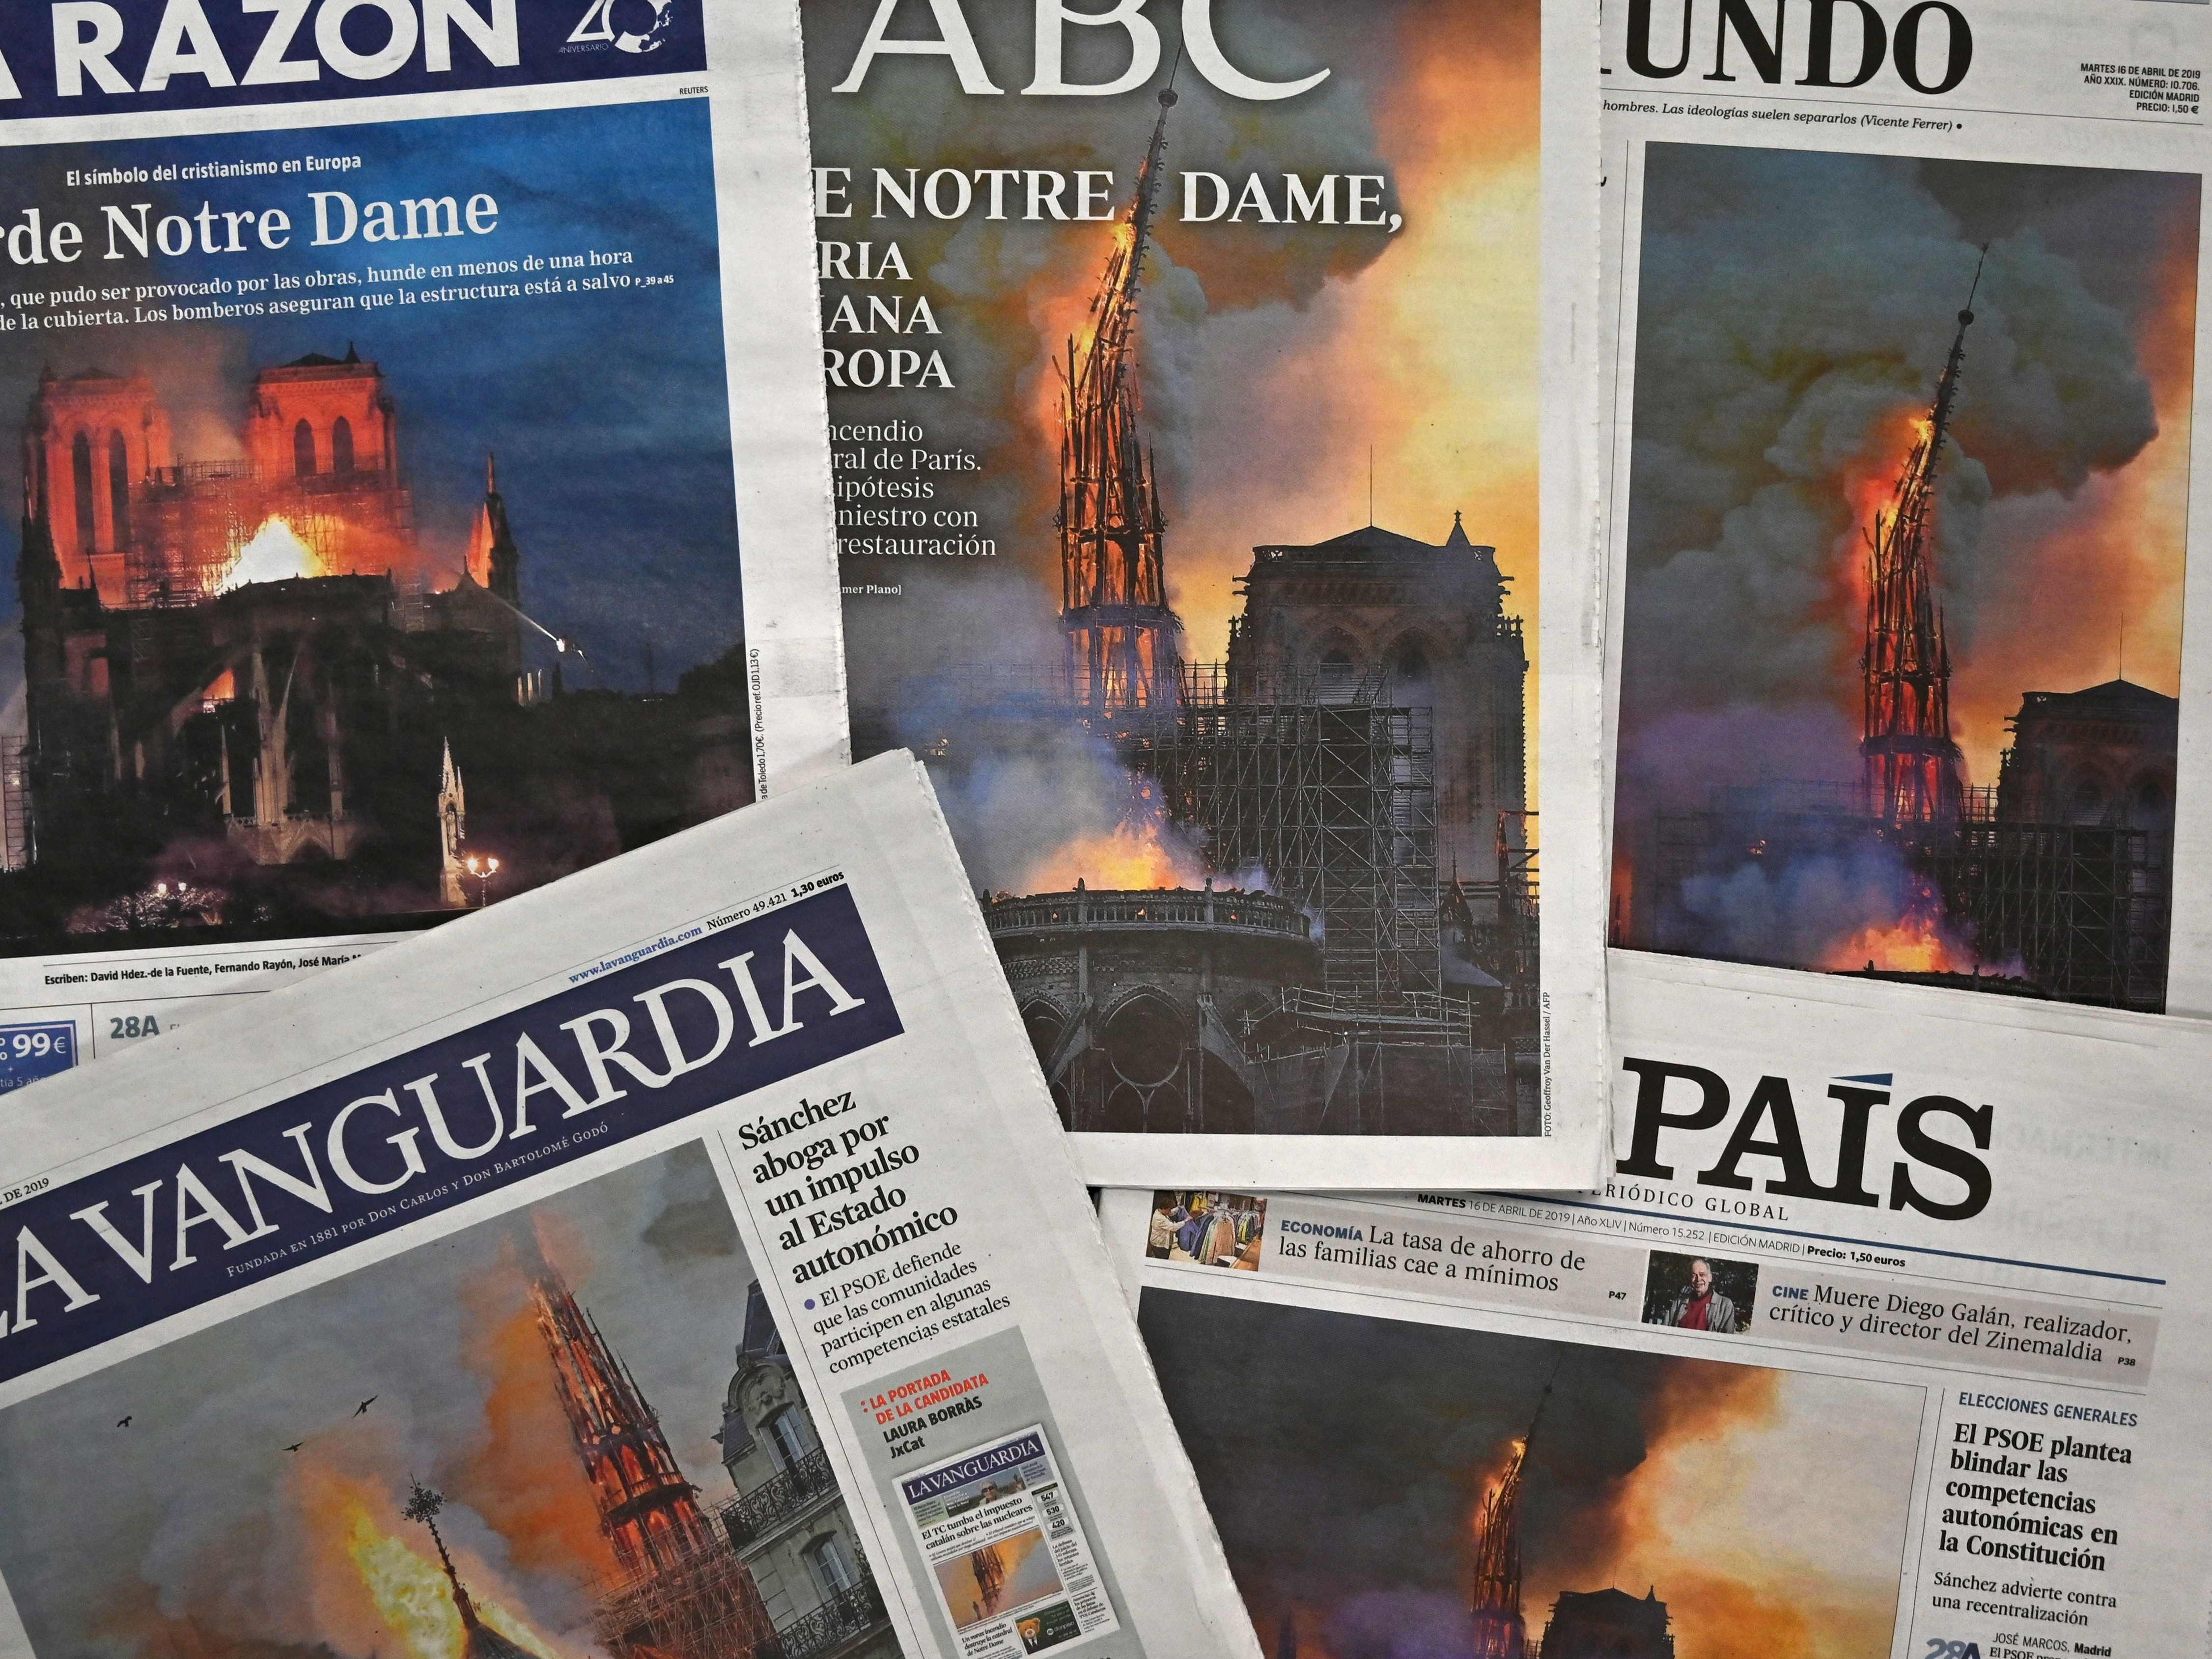 Spanish daily newspapers with front page coverage of the Notre-Dame Cathedral fire in Paris.